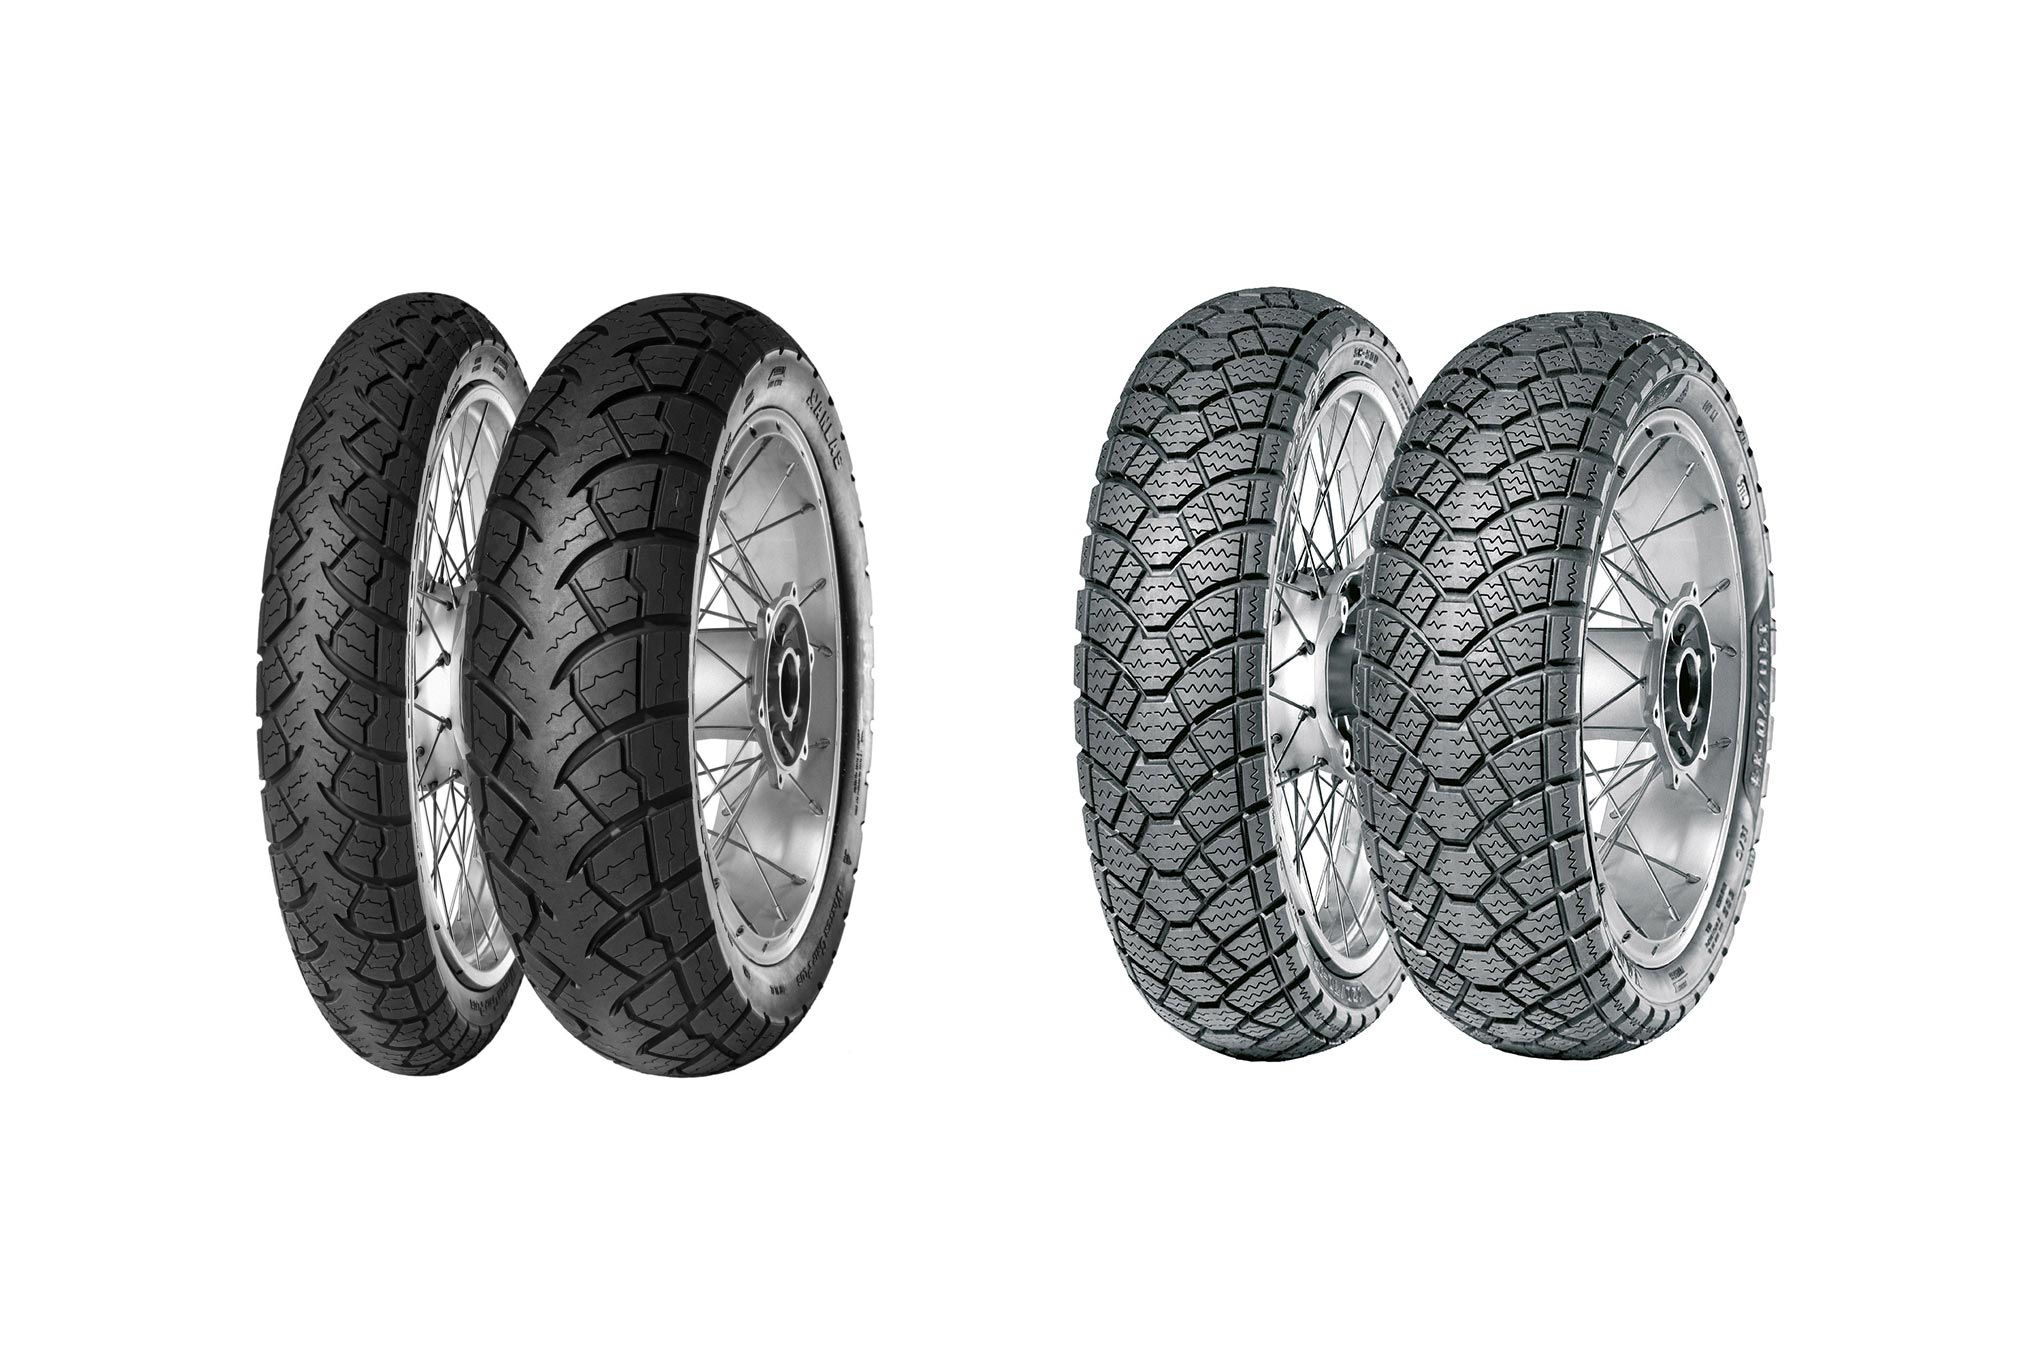 Winter Tires Quebec >> Yes, Winter Traction Tires Exist for Motorcycles - Asphalt & Rubber